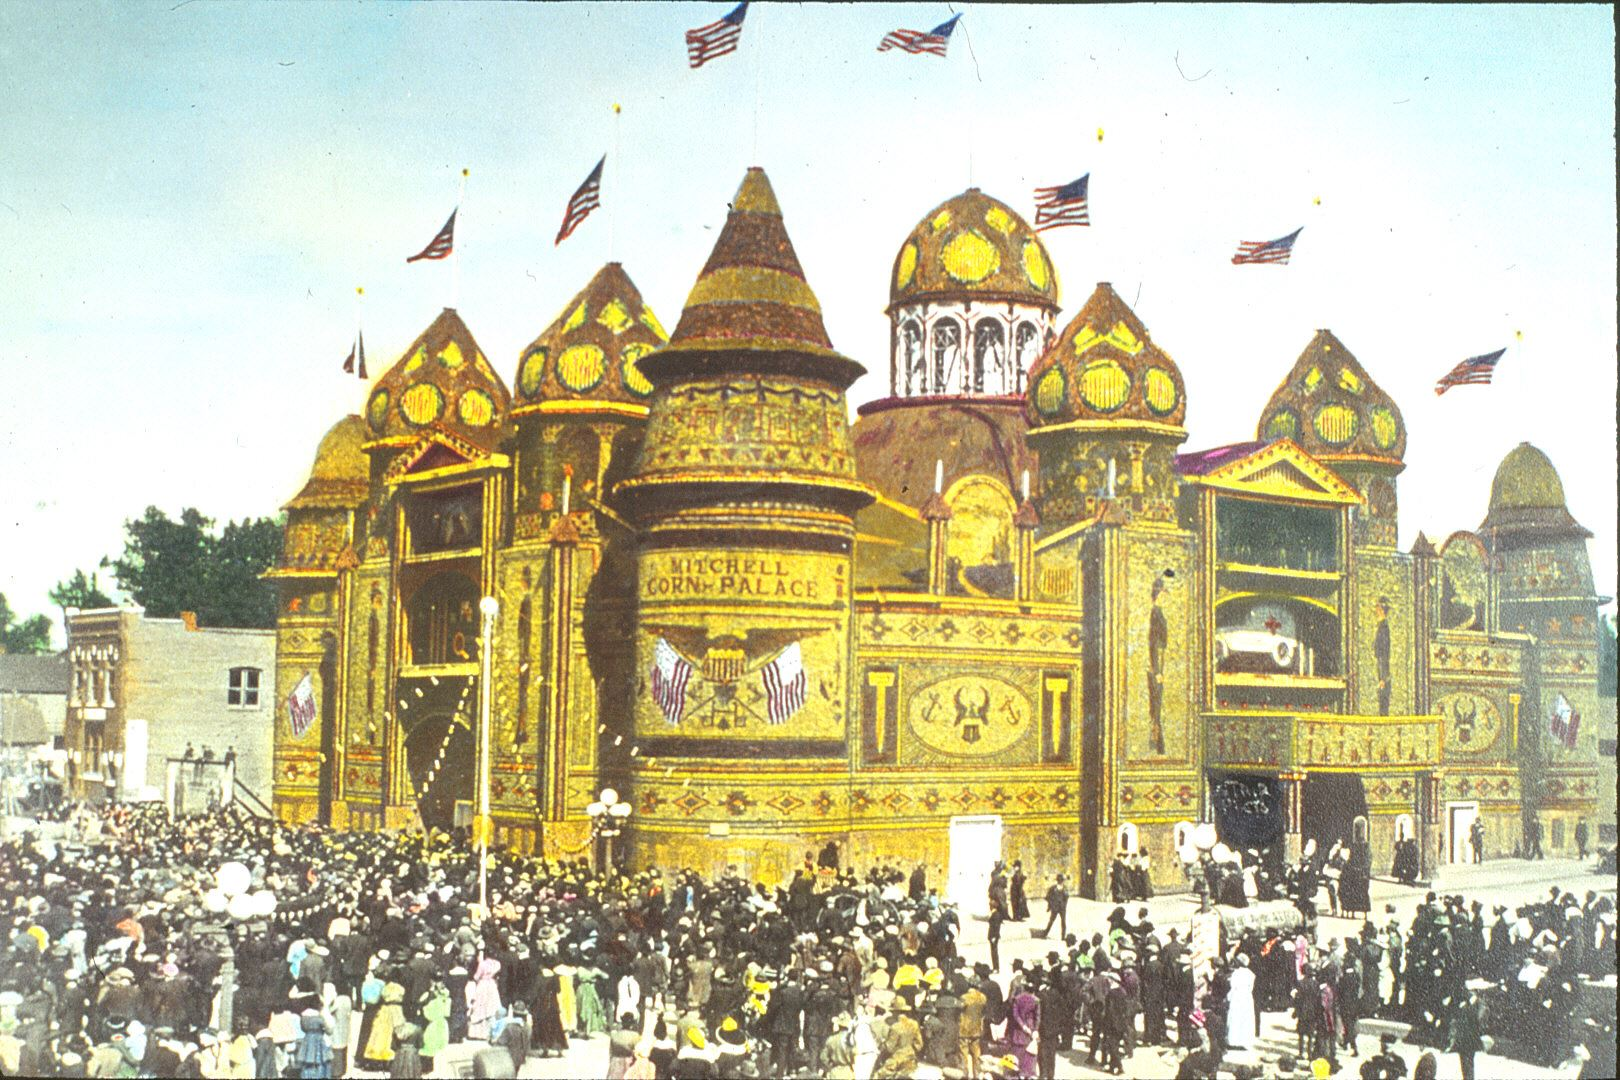 An image of the Corn Palace from 1917.